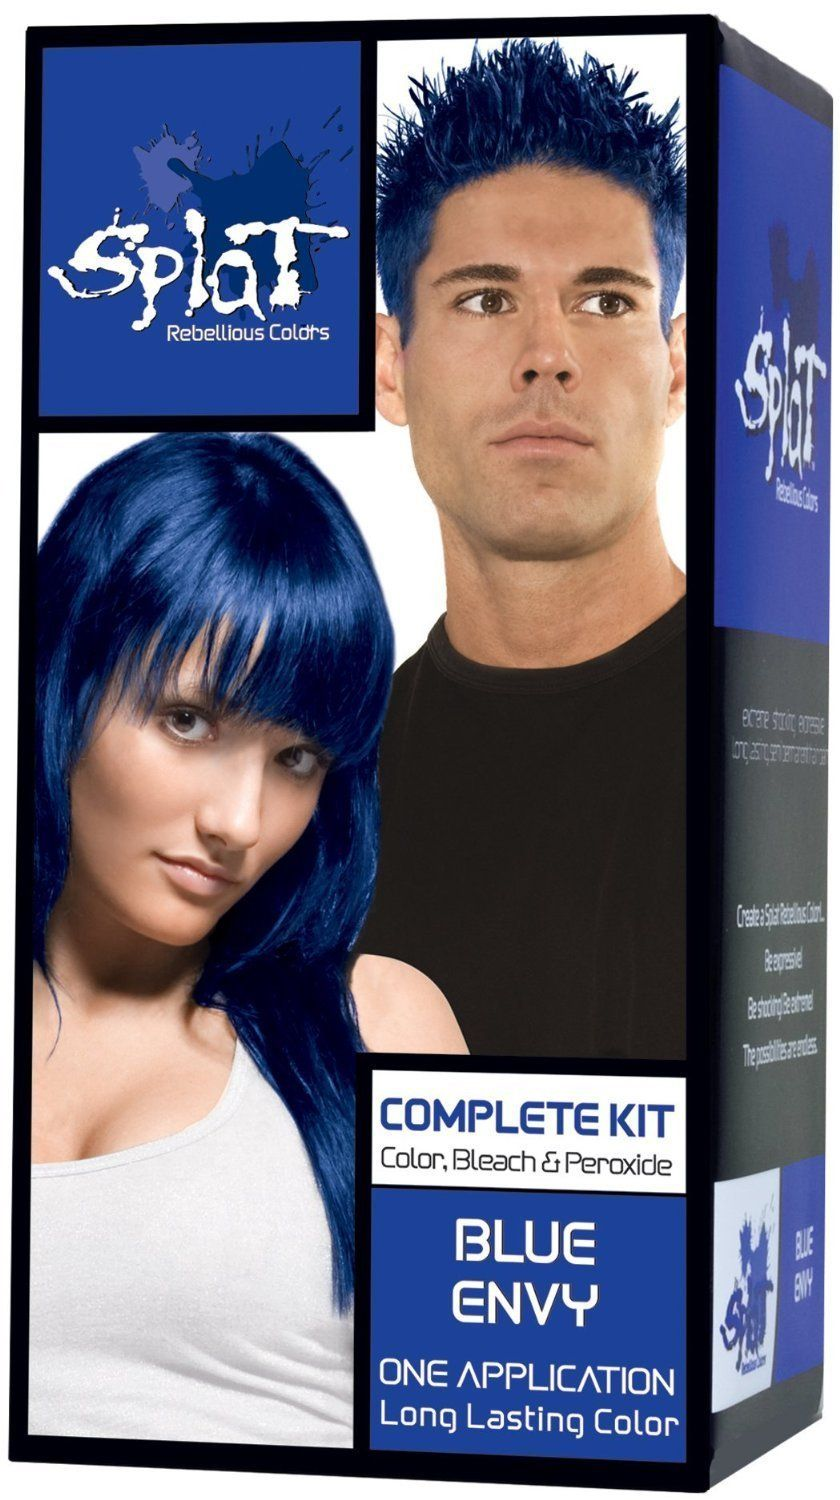 Splat Rebellious Colors Complete Hair Color Kit Blue Envy Pack Of